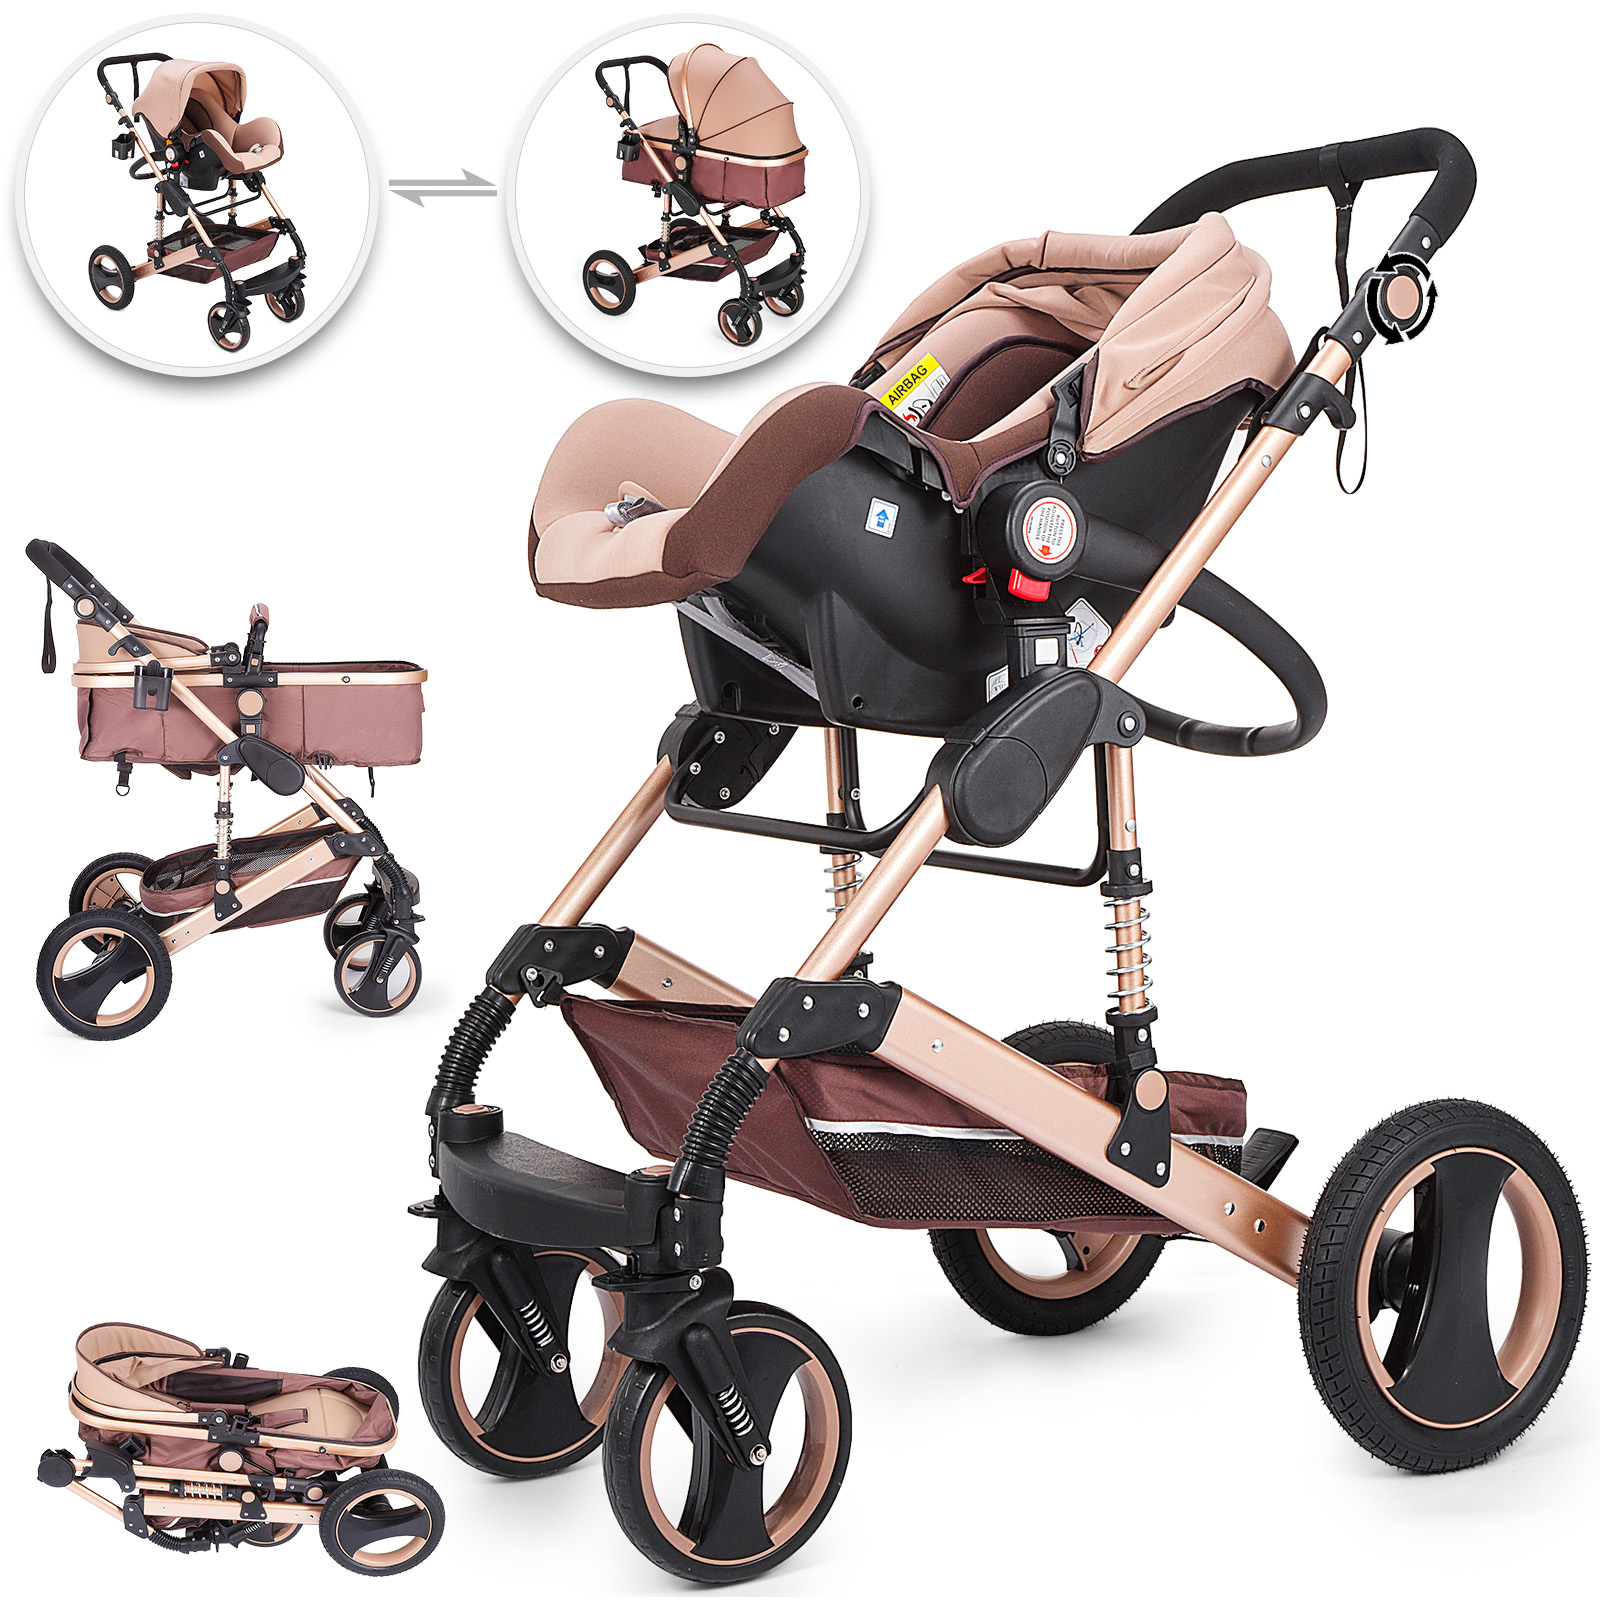 Stroller Travel System Ebay Details About 3 In 1 Baby Stroller Buggy With Car Seat Newborn Pram Pushchair Travel System